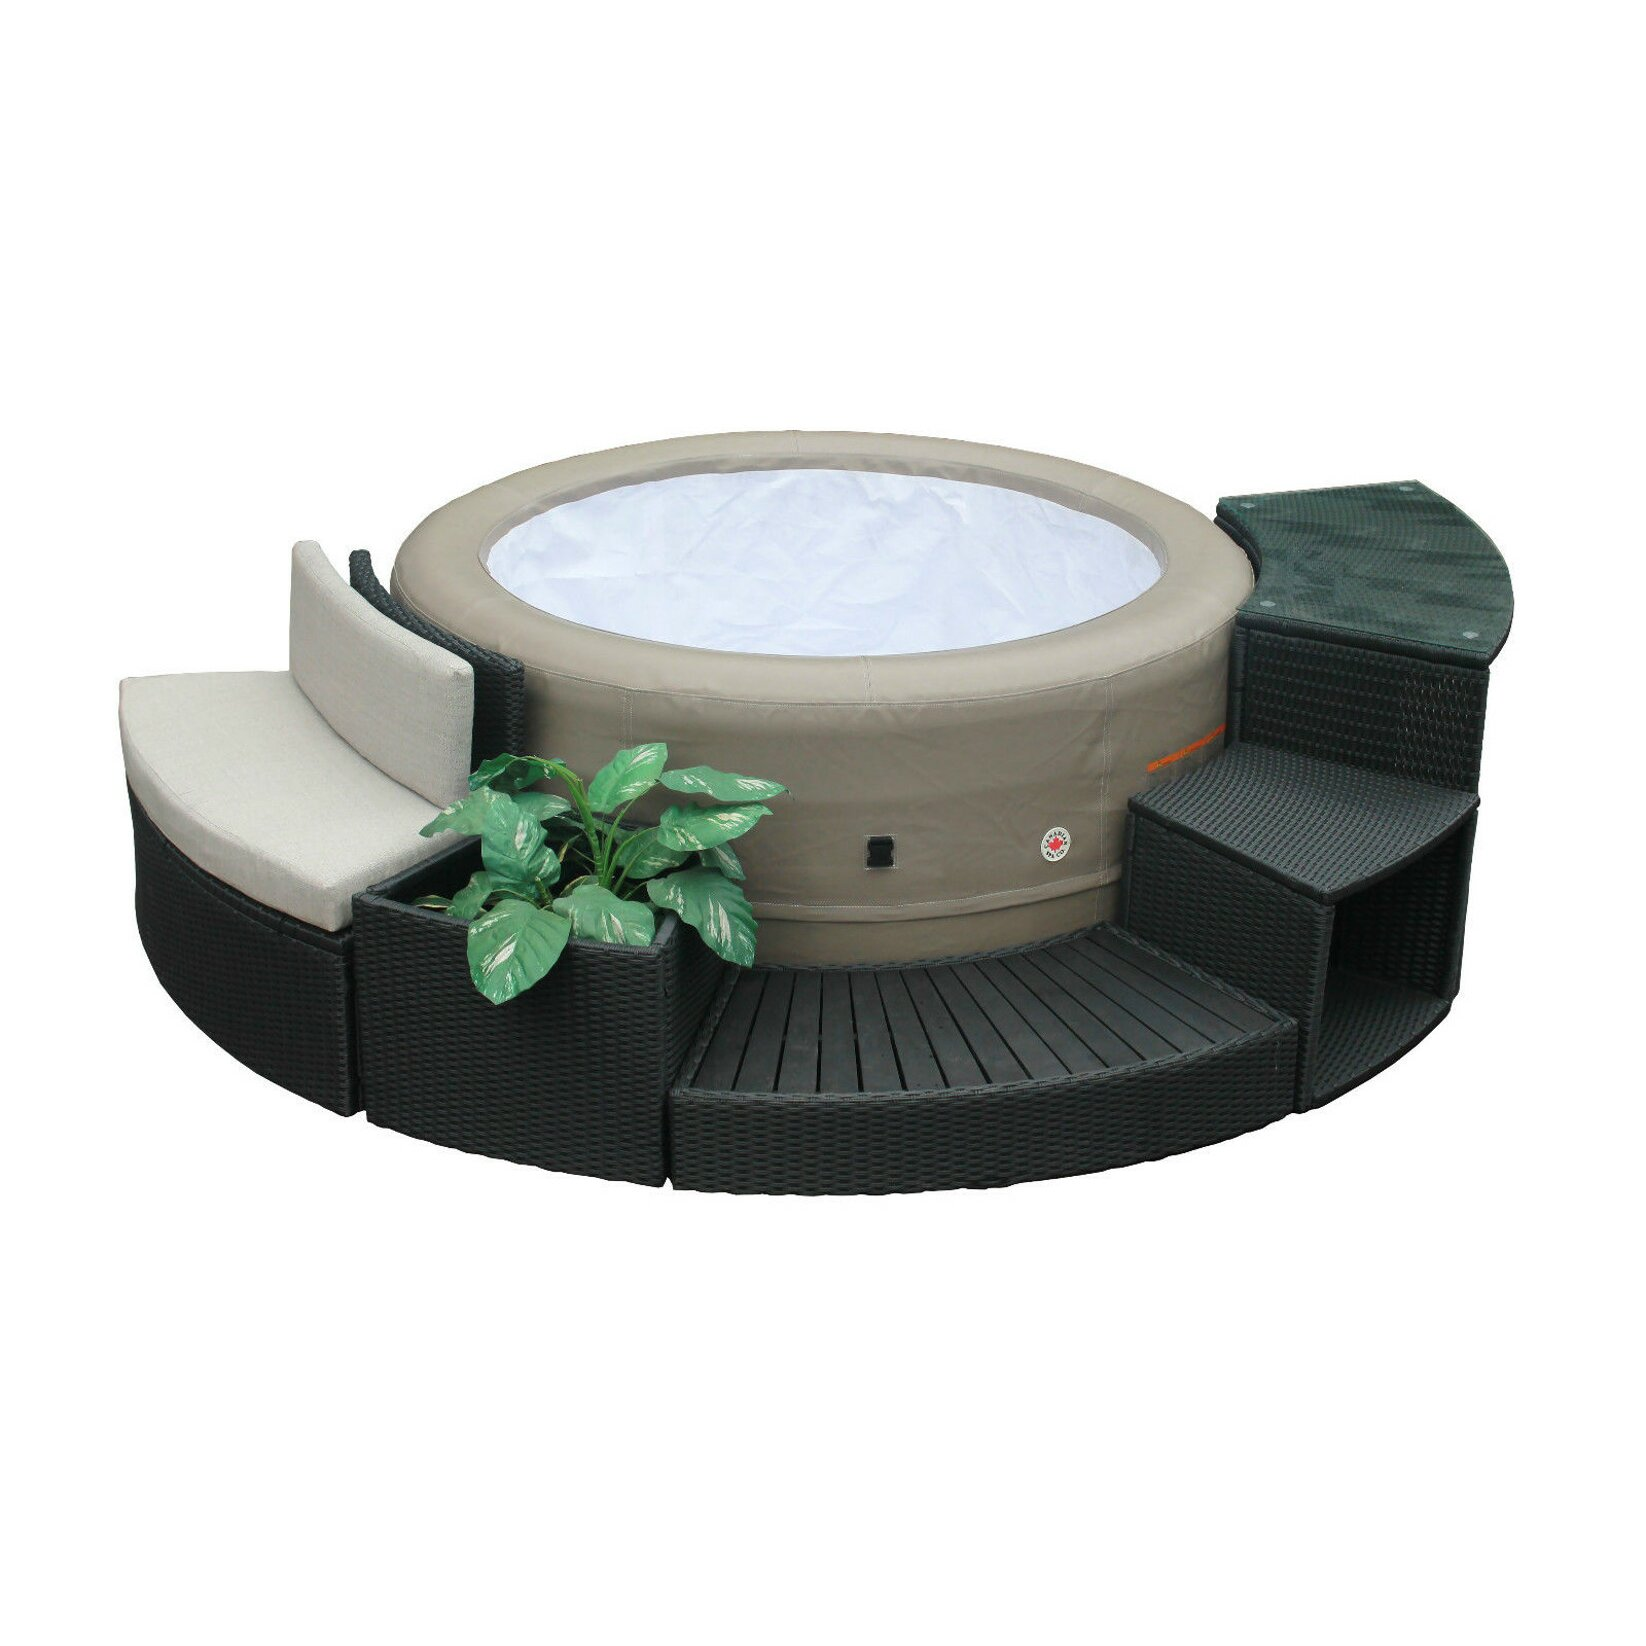 Canadian spa co round spa surround furniture 5 piece set amp reviews